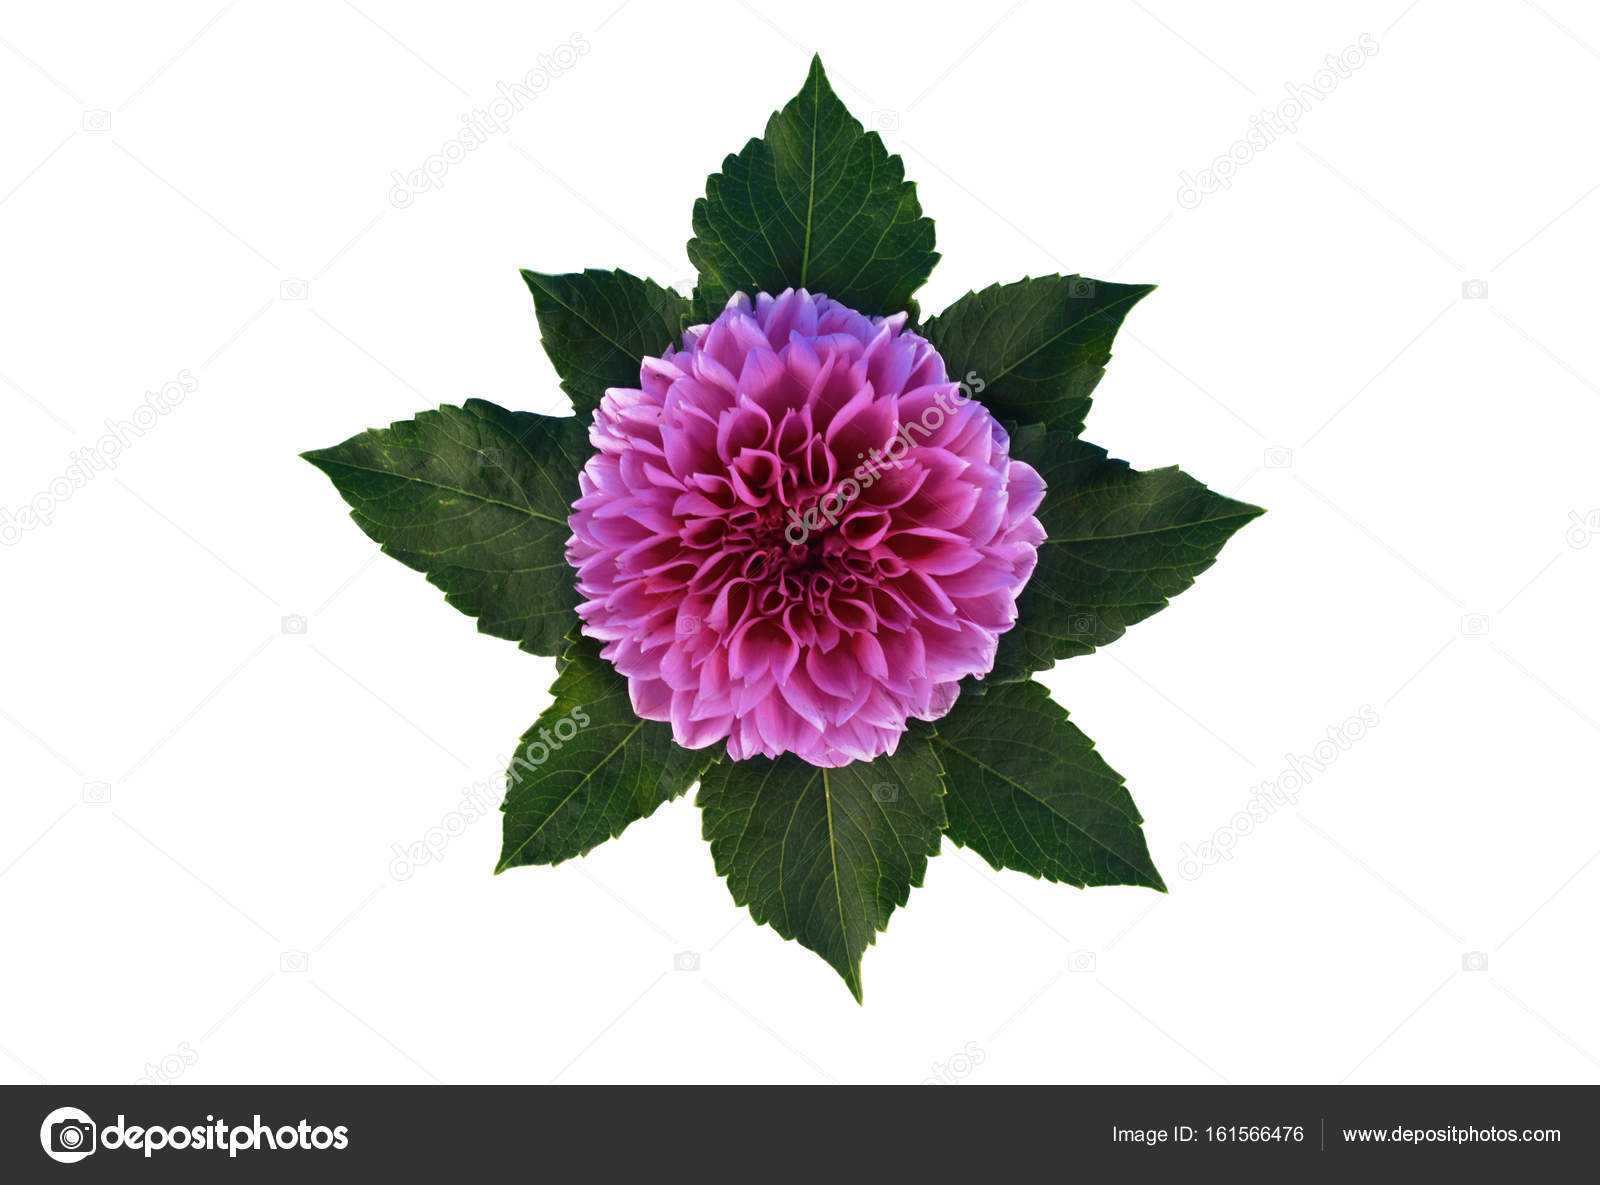 Dahlia flowers isolated on white background stock photo dahlia flowers and leaves isolated on white background with place for your text flat lay style photo by niekrasova izmirmasajfo